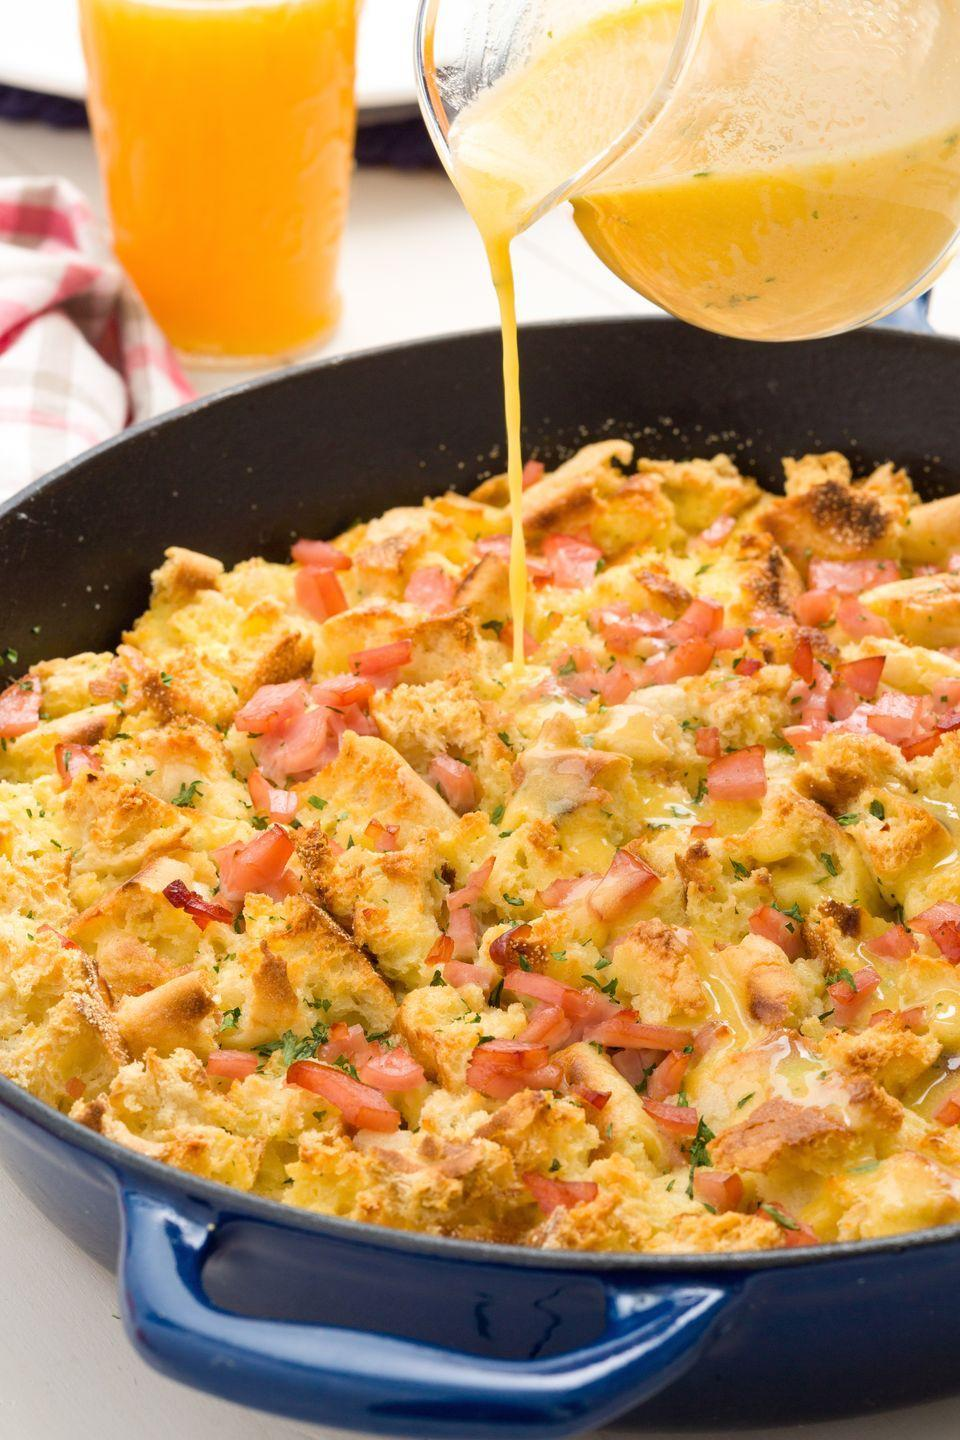 """<p>Always order eggs benny when out to brunch? Recreate the fave at home with this one-pan dish.</p><p>Get the recipe from <a href=""""/cooking/recipe-ideas/recipes/a45032/eggs-benedict-skillet-casserole-recipe/"""" data-ylk=""""slk:Delish"""" class=""""link rapid-noclick-resp"""">Delish</a>.</p>"""